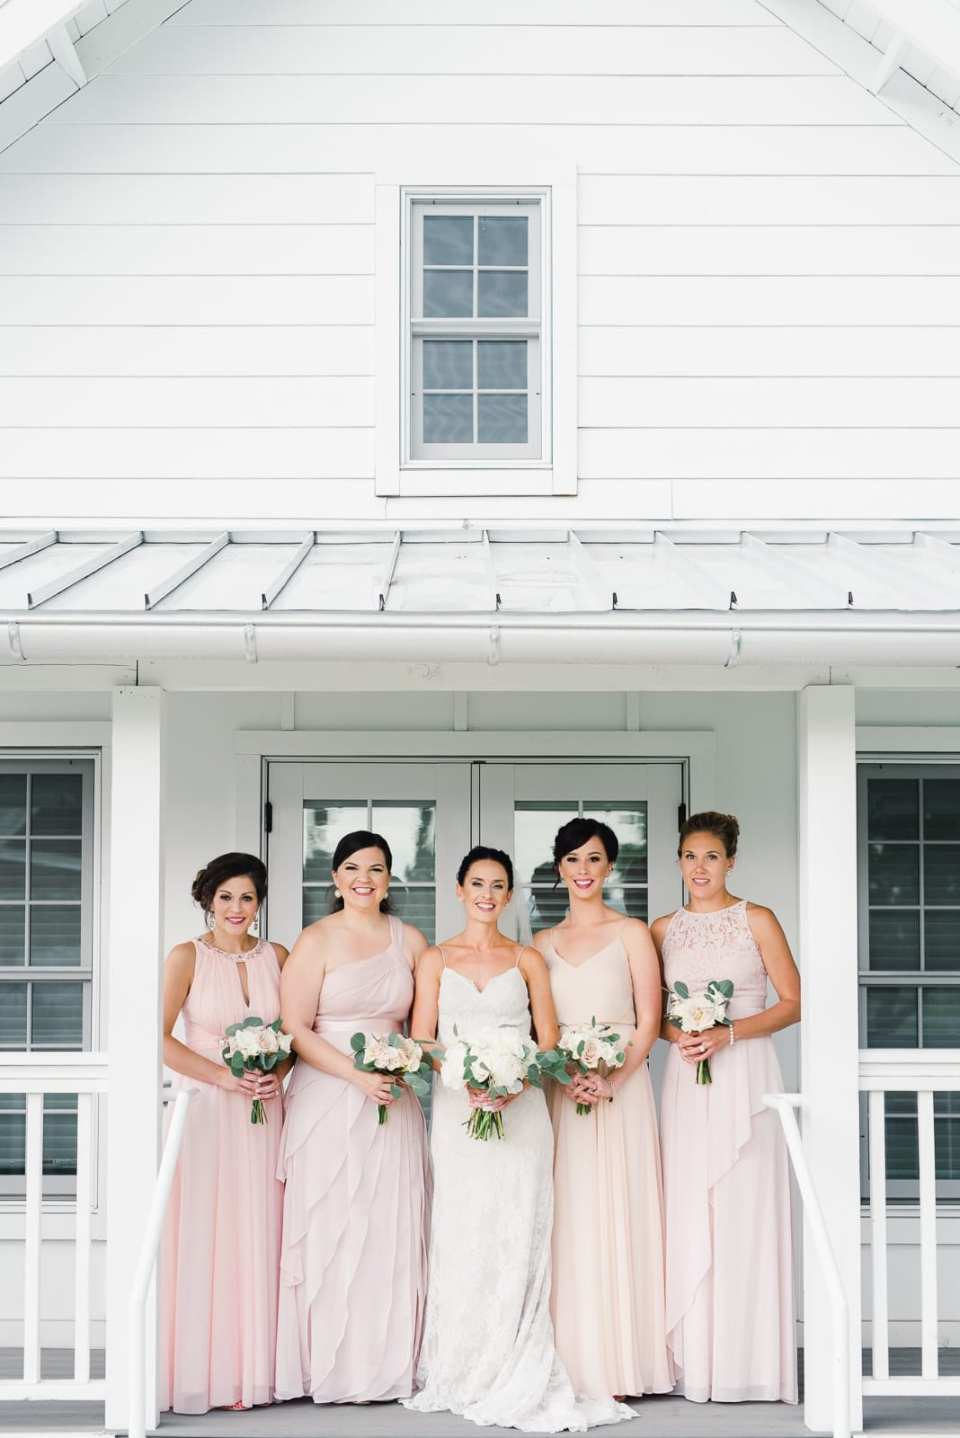 Classic Wedding Style Bridesmaids and Bride | Josie V Photography